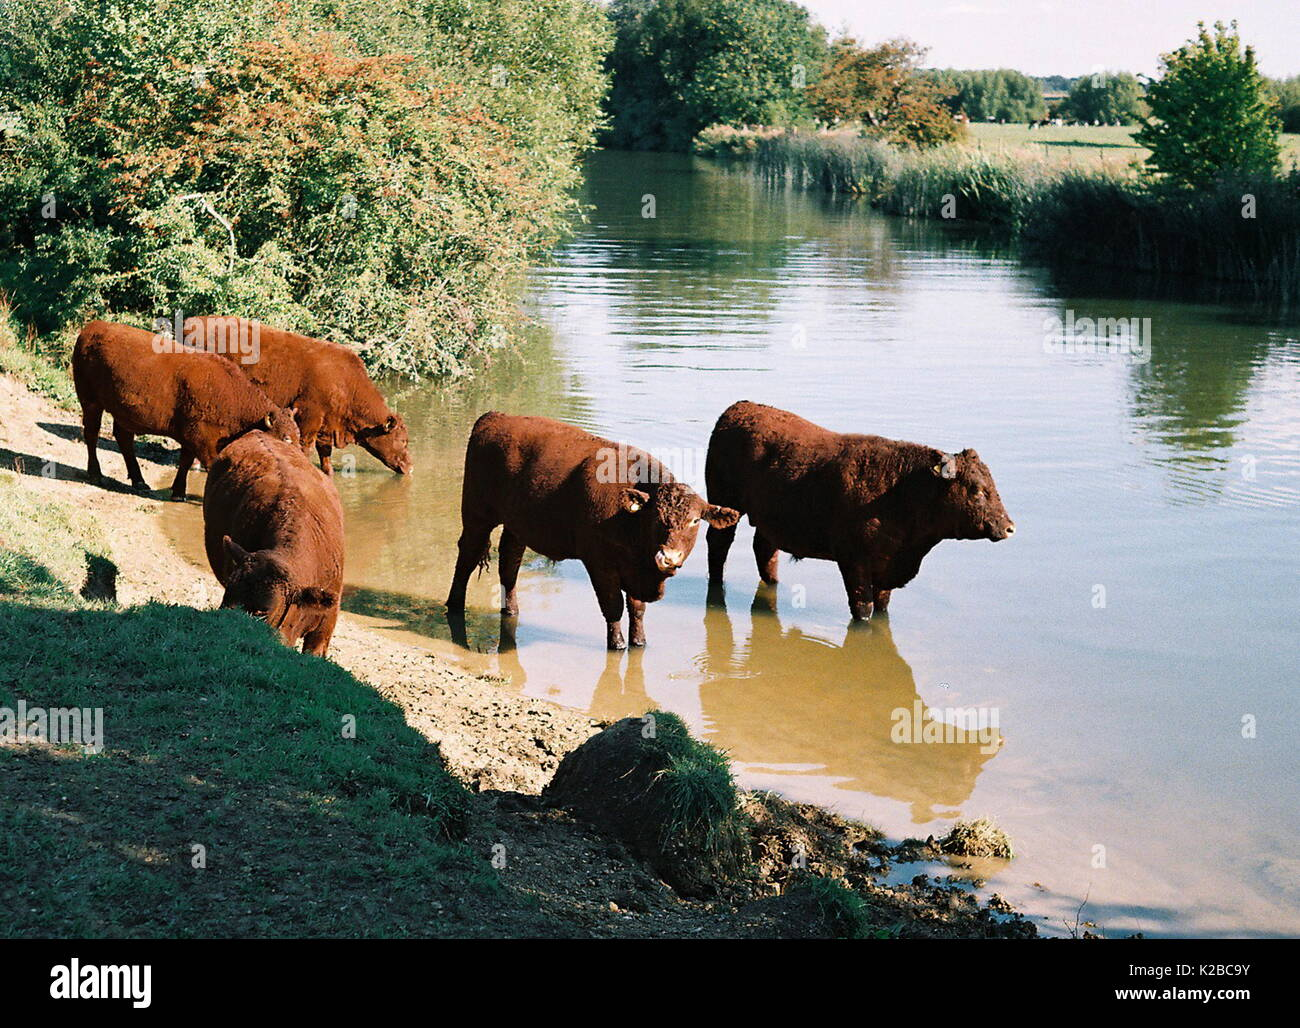 AJAXNETPHOTO. WITNEY,ENGLAND. - LIVESTOCK WATERING HOLE - BULLS ON THE BANKS OF THE RIVER THAMES.  PHOTO:JONATHAN EASTLAND/AJAX REF:TC172617_10 - Stock Image